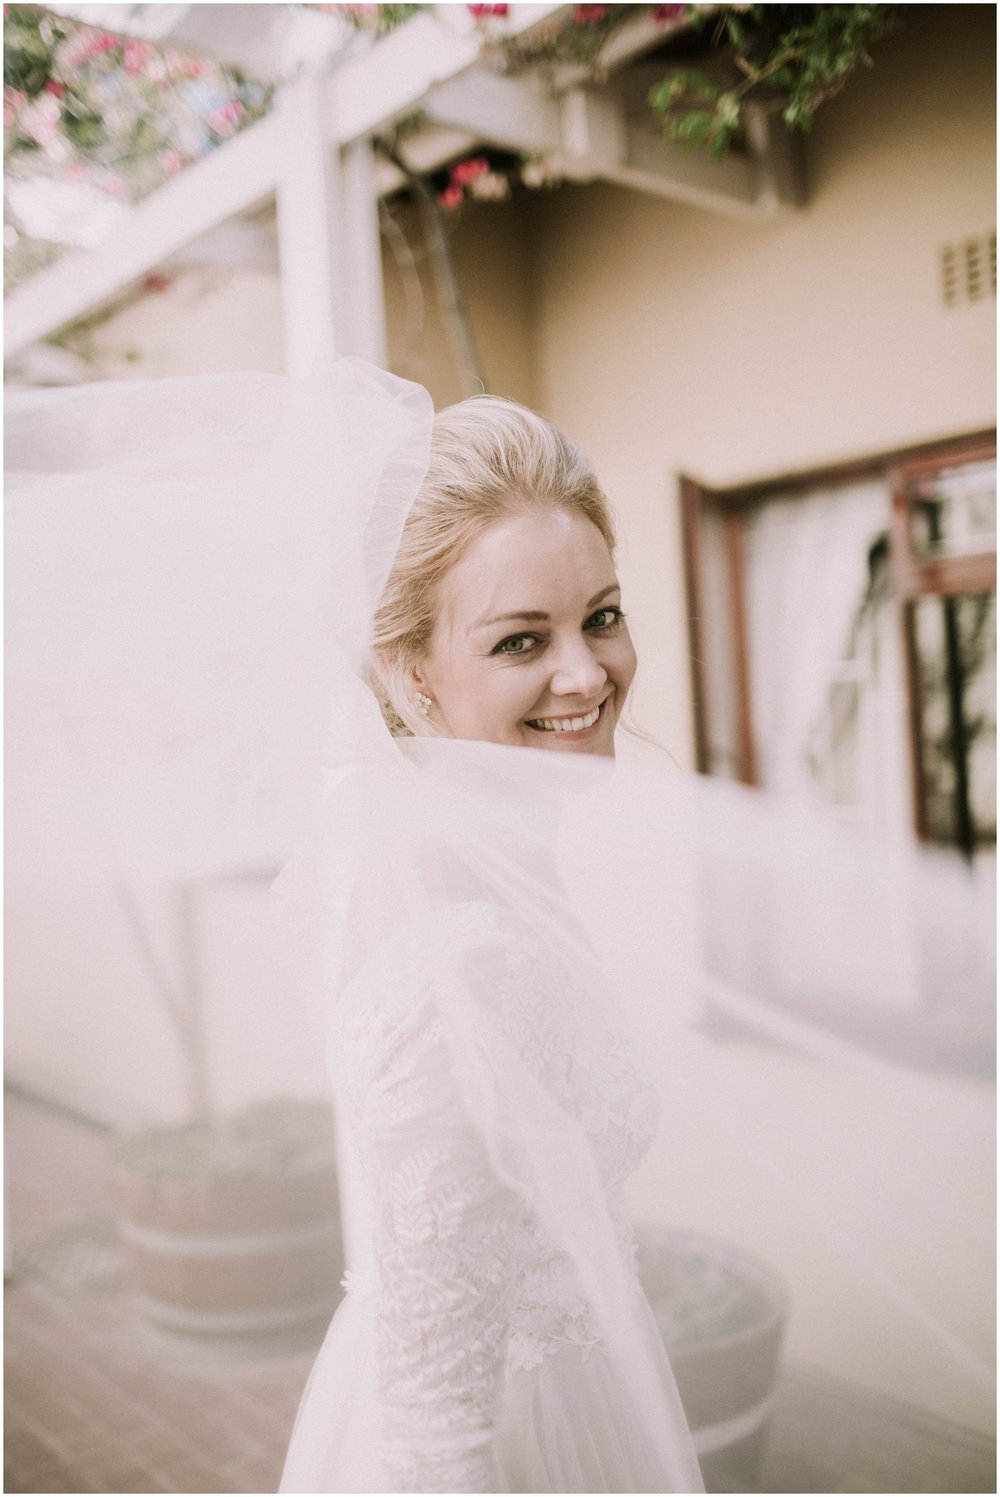 Top Wedding Photographer Cape Town South Africa Artistic Creative Documentary Wedding Photography Rue Kruger_0675.jpg